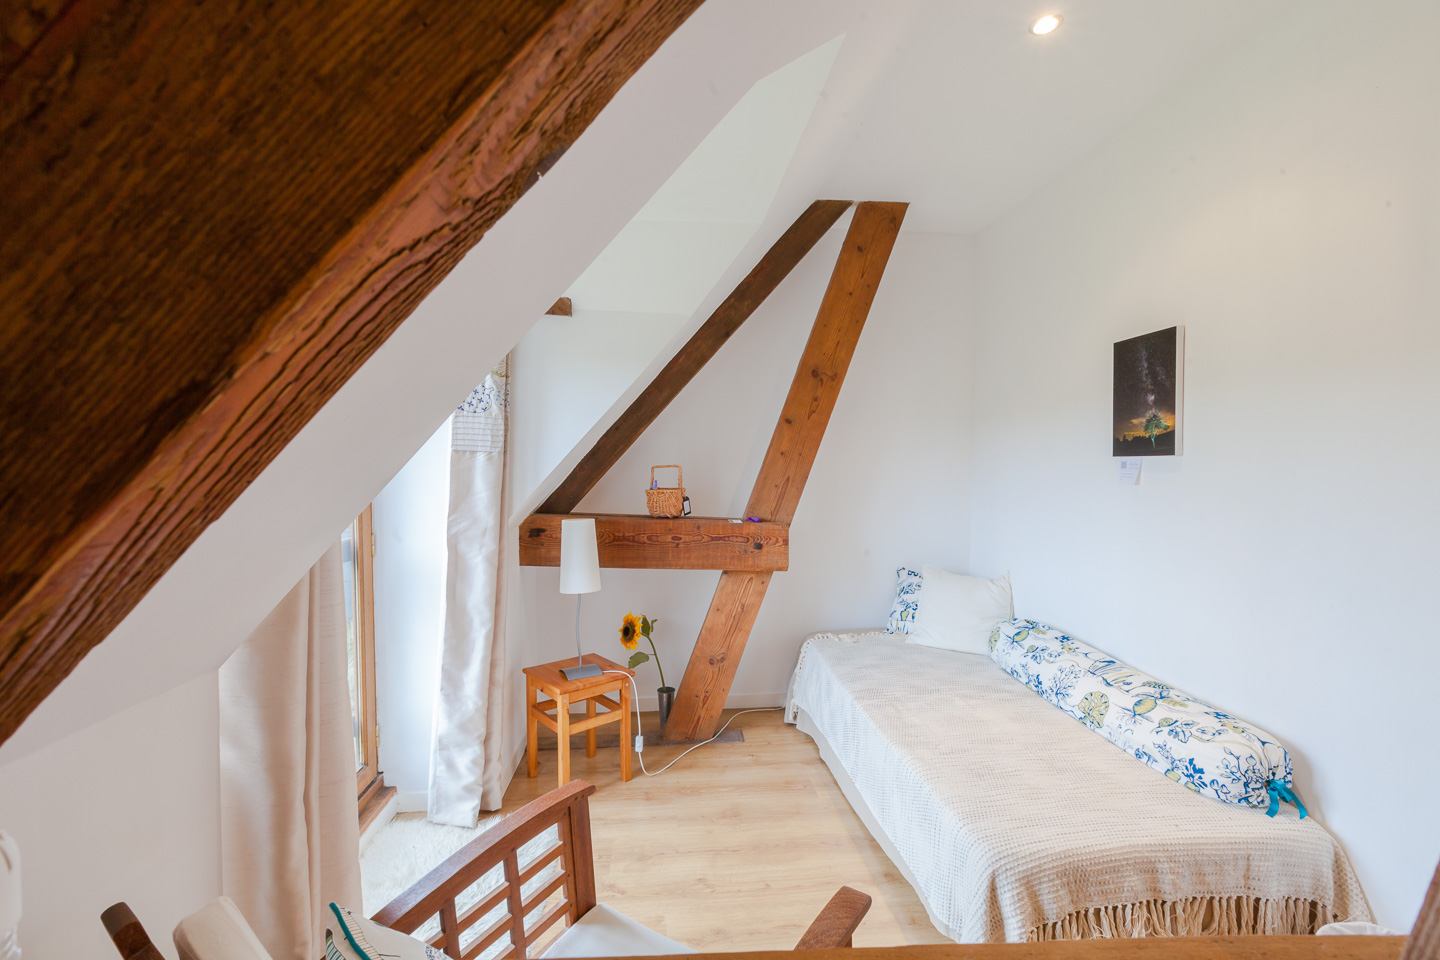 Chambres d'hôtes Le Val Borel - The Normandy In Bed & Breakfast - Montbray - Manche